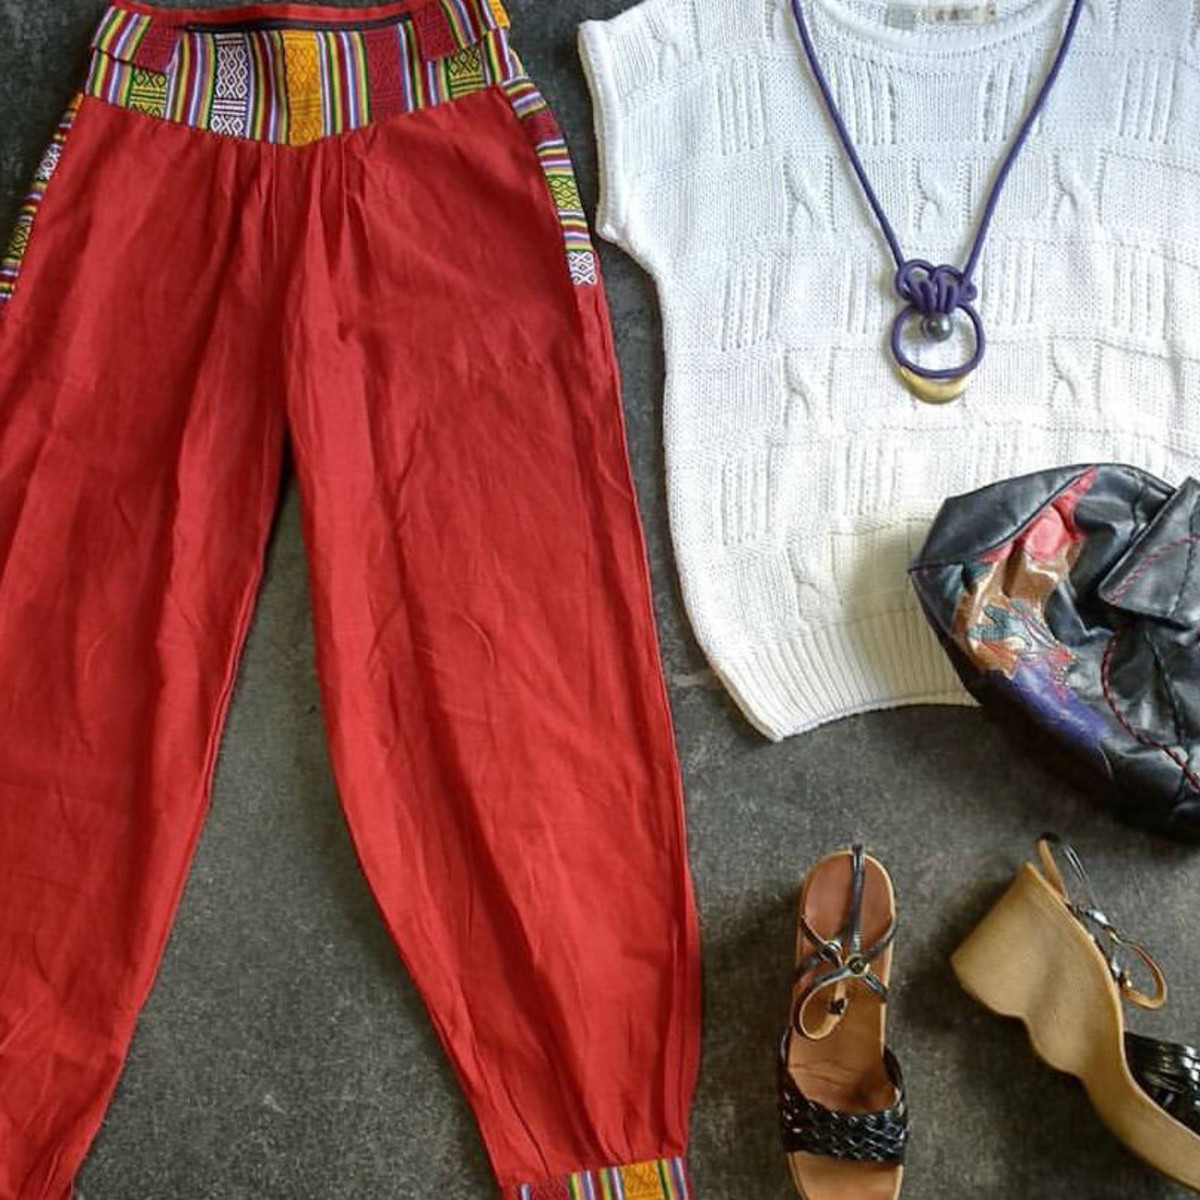 Austin S 15 Best Thrift Stores For Cheap Finds And One Of A Kind Goods Culturemap Austin